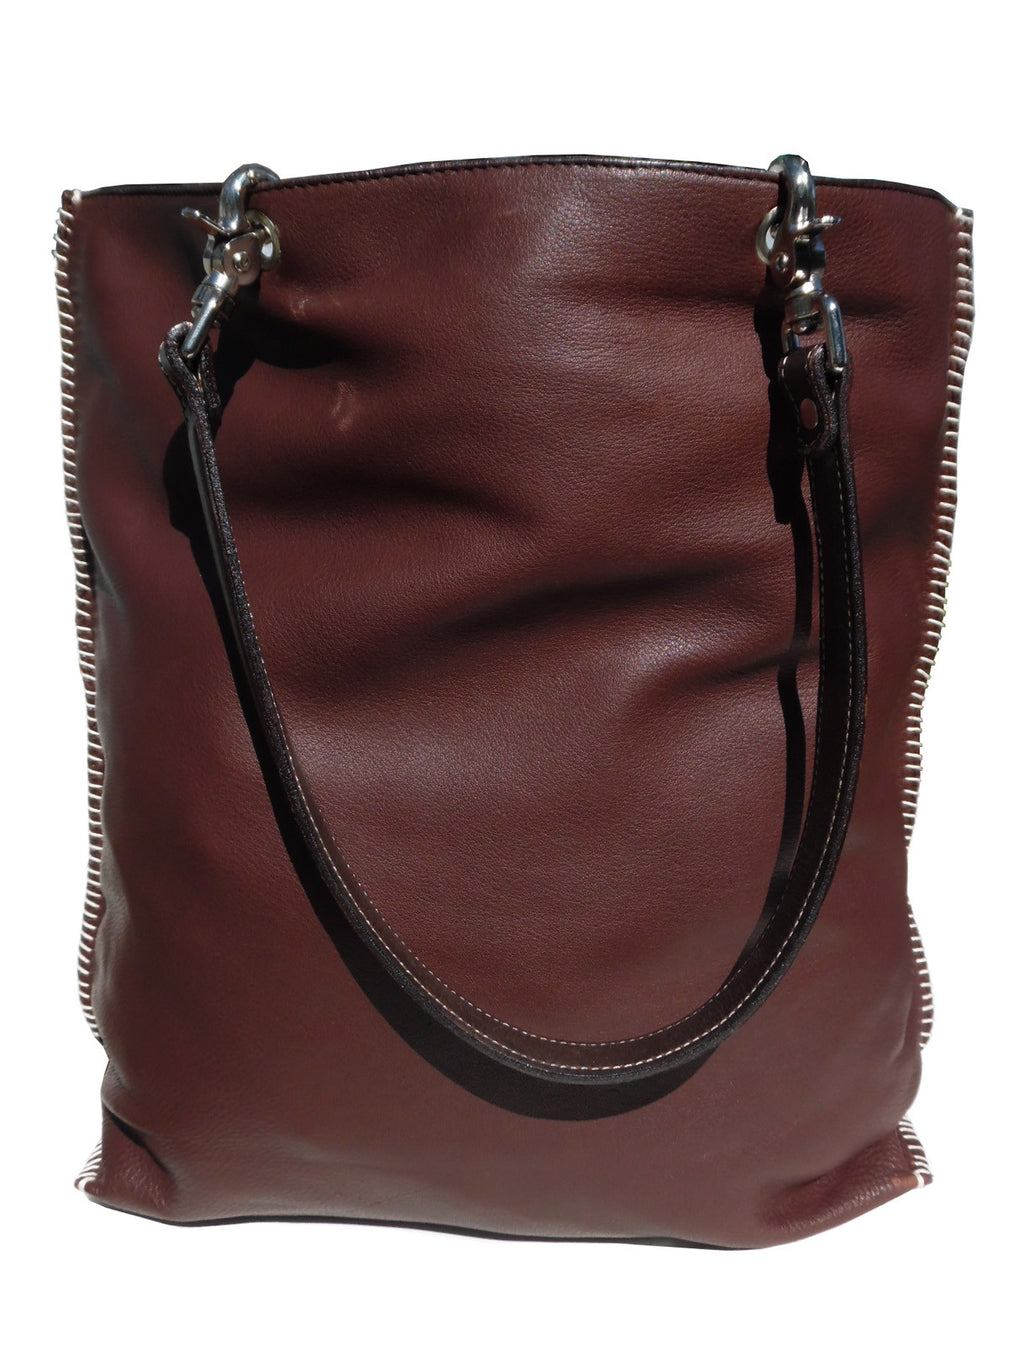 Gajumbo Tote Bag Butter Leather Chocolate